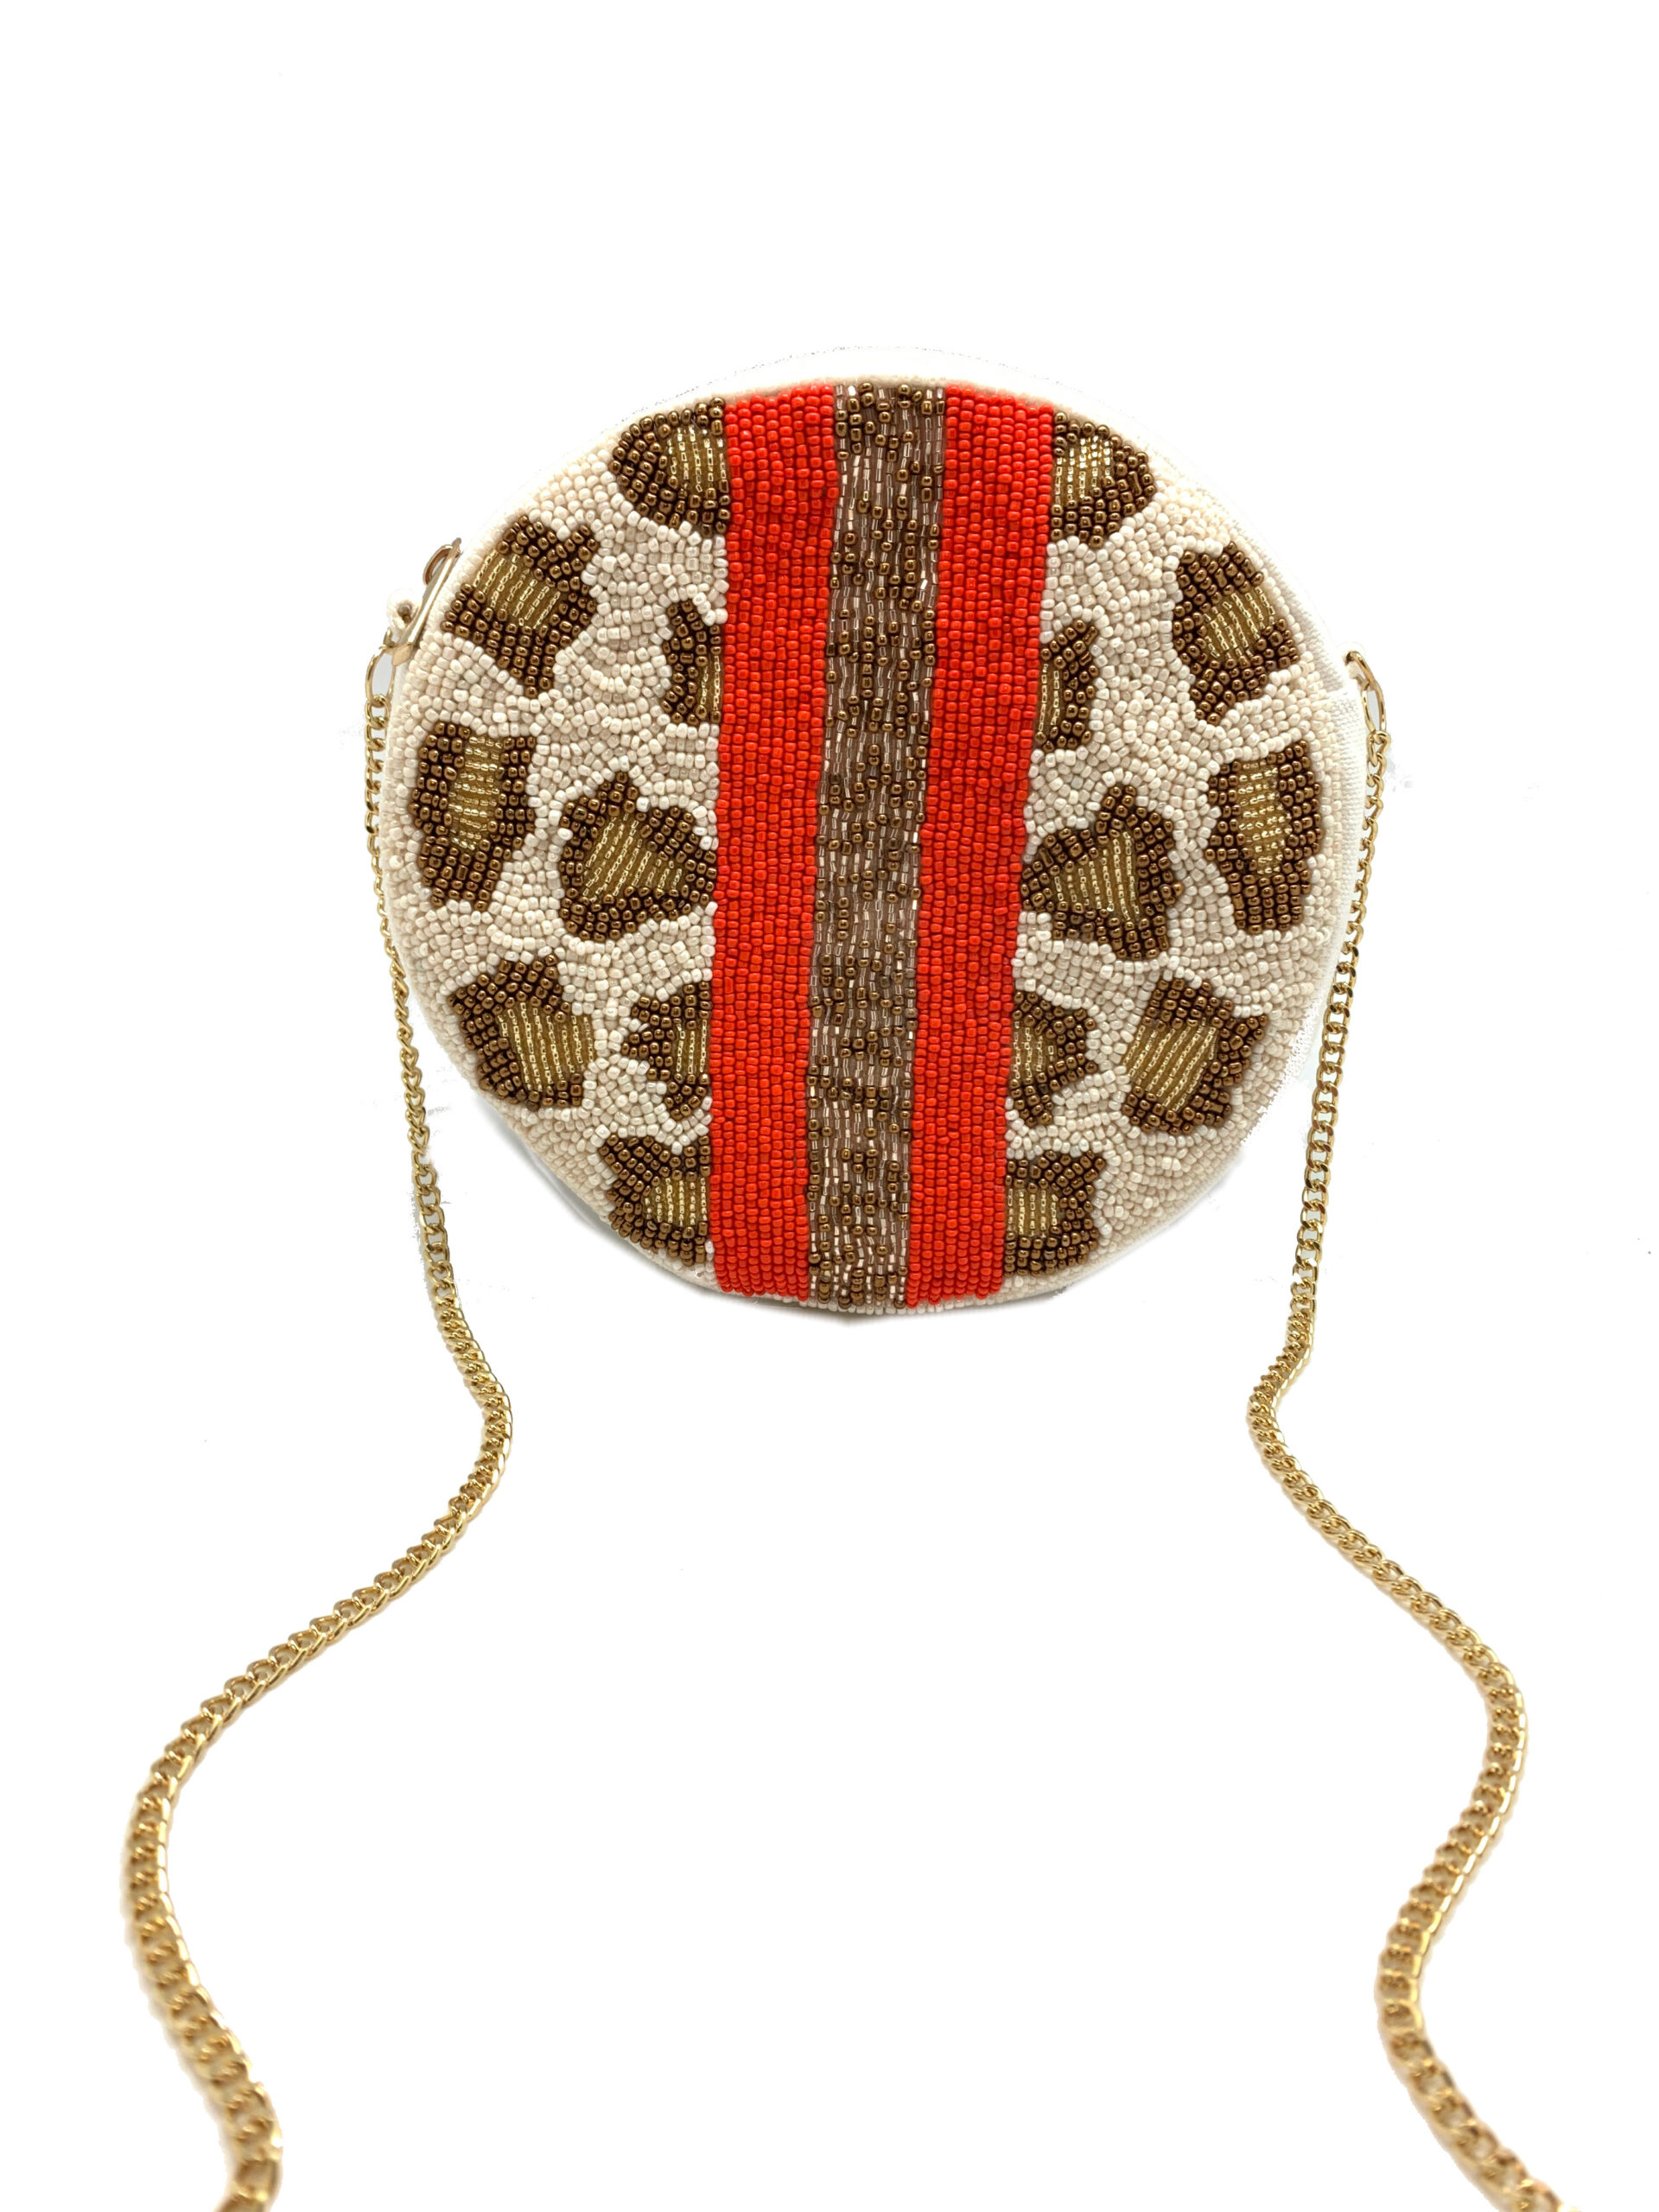 ROUND LEOPARD AND STRIPES BEADED BAG